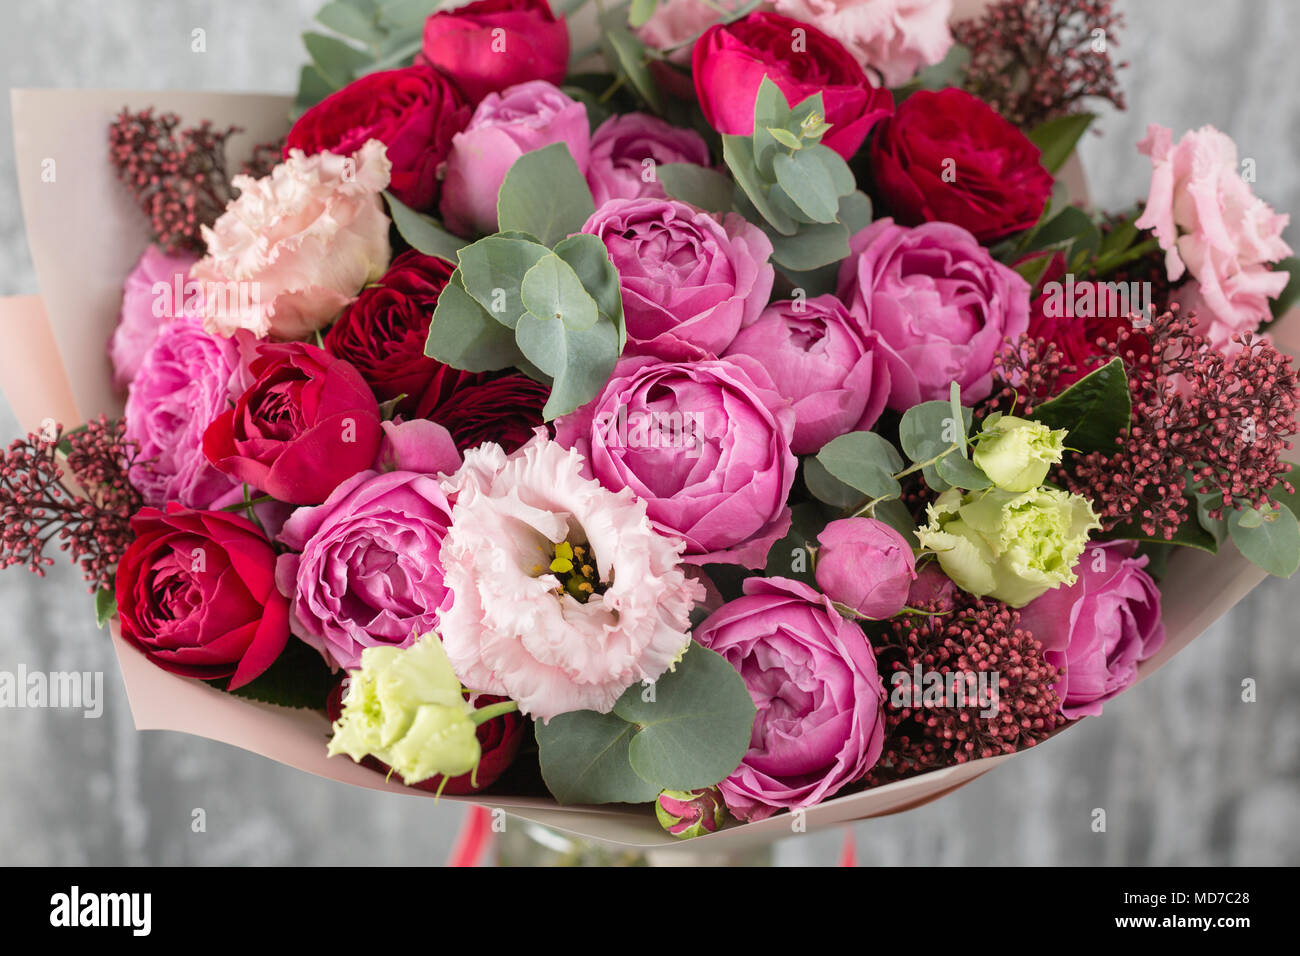 Close up beautiful bouquet spring flowers on gray background close up beautiful bouquet spring flowers on gray background flower shop wooden table izmirmasajfo